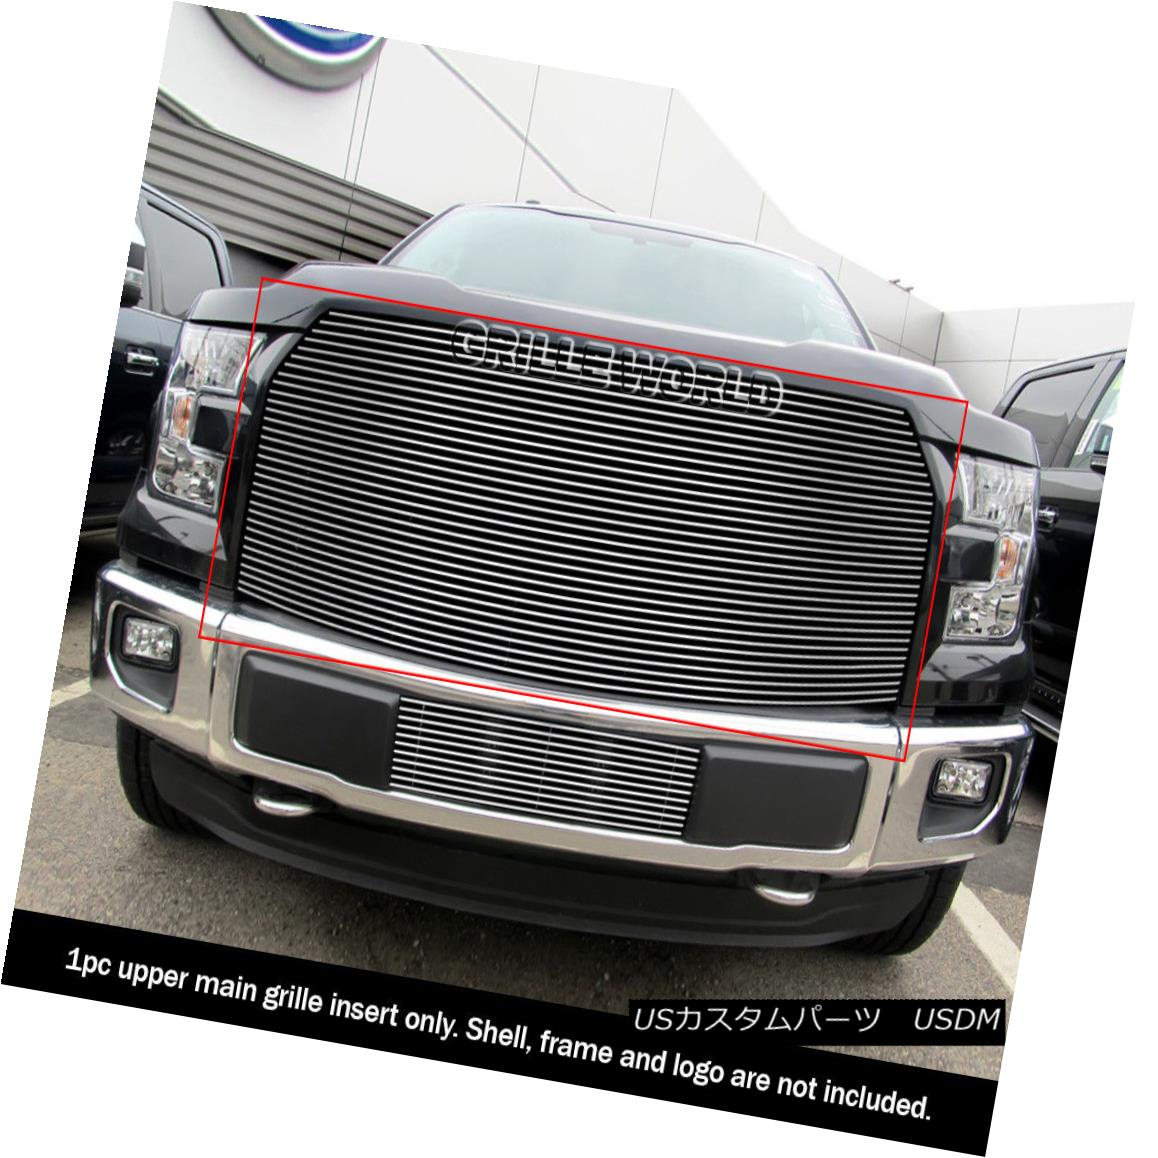 グリル For 2015-2017 Ford F-150 Replacement Billet Grille Insert 2015-2017 For Ford F-150交換用ビレットグリルインサート